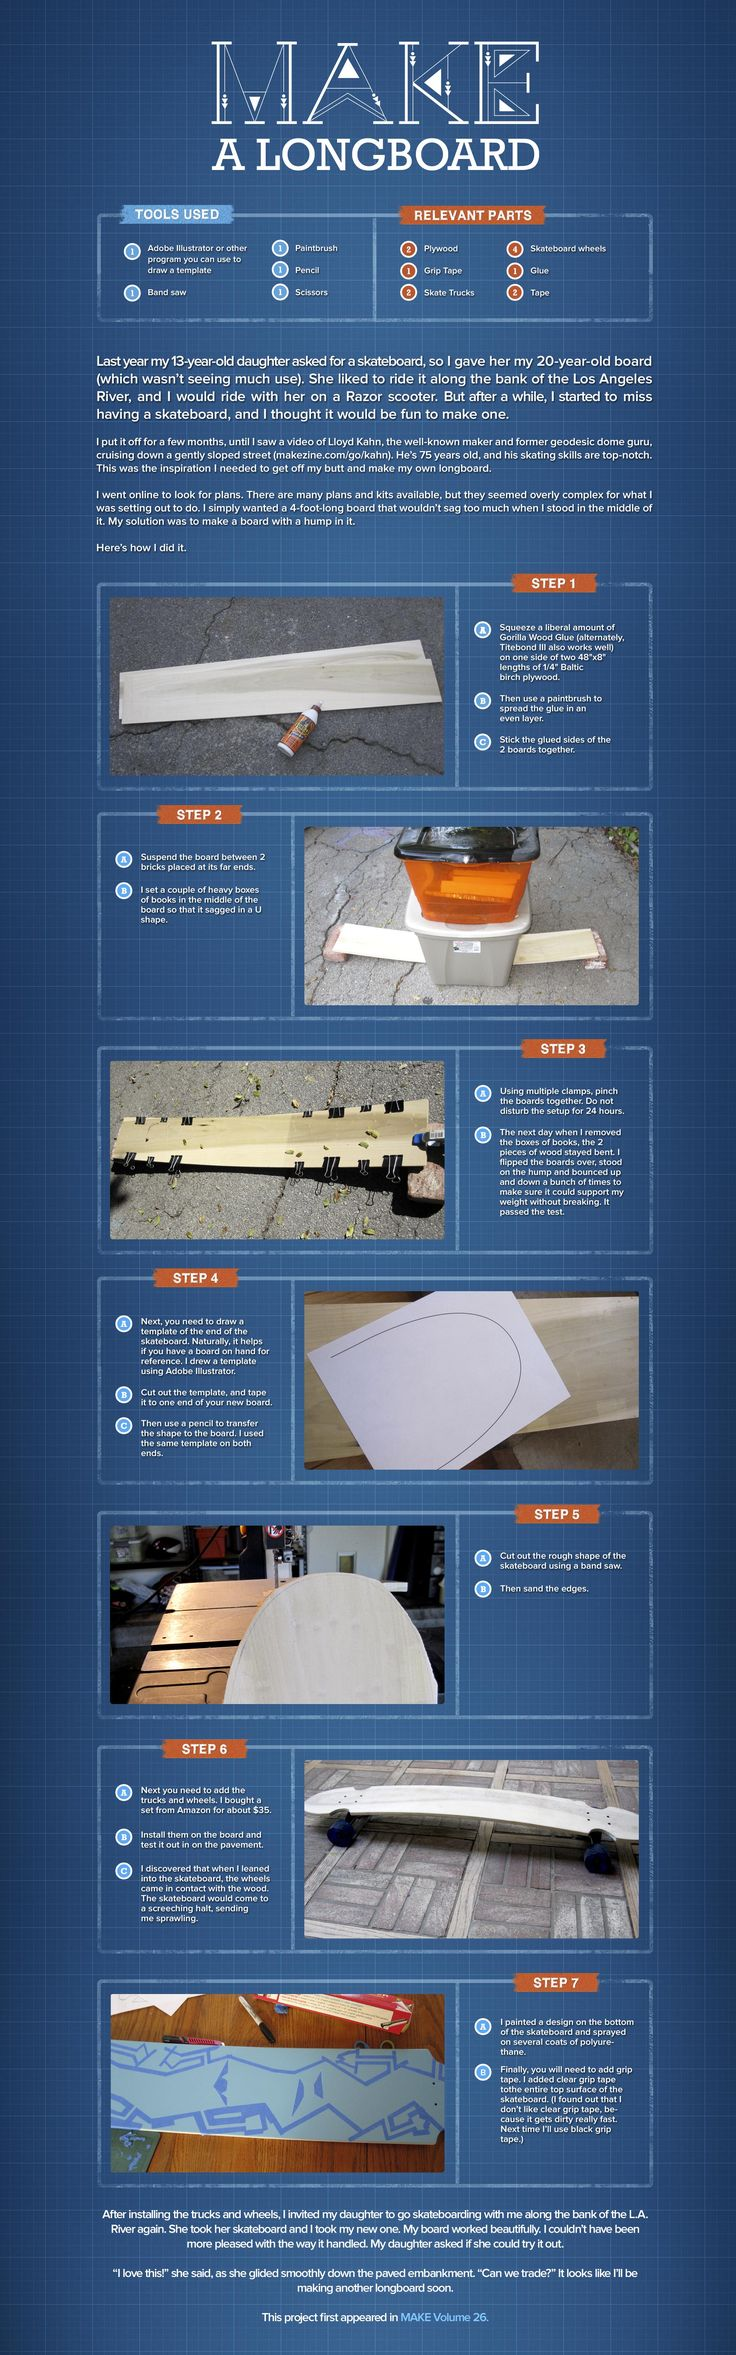 How To Make A Longboard, when there's no longer someone to bribe to make you a deck. I like this.